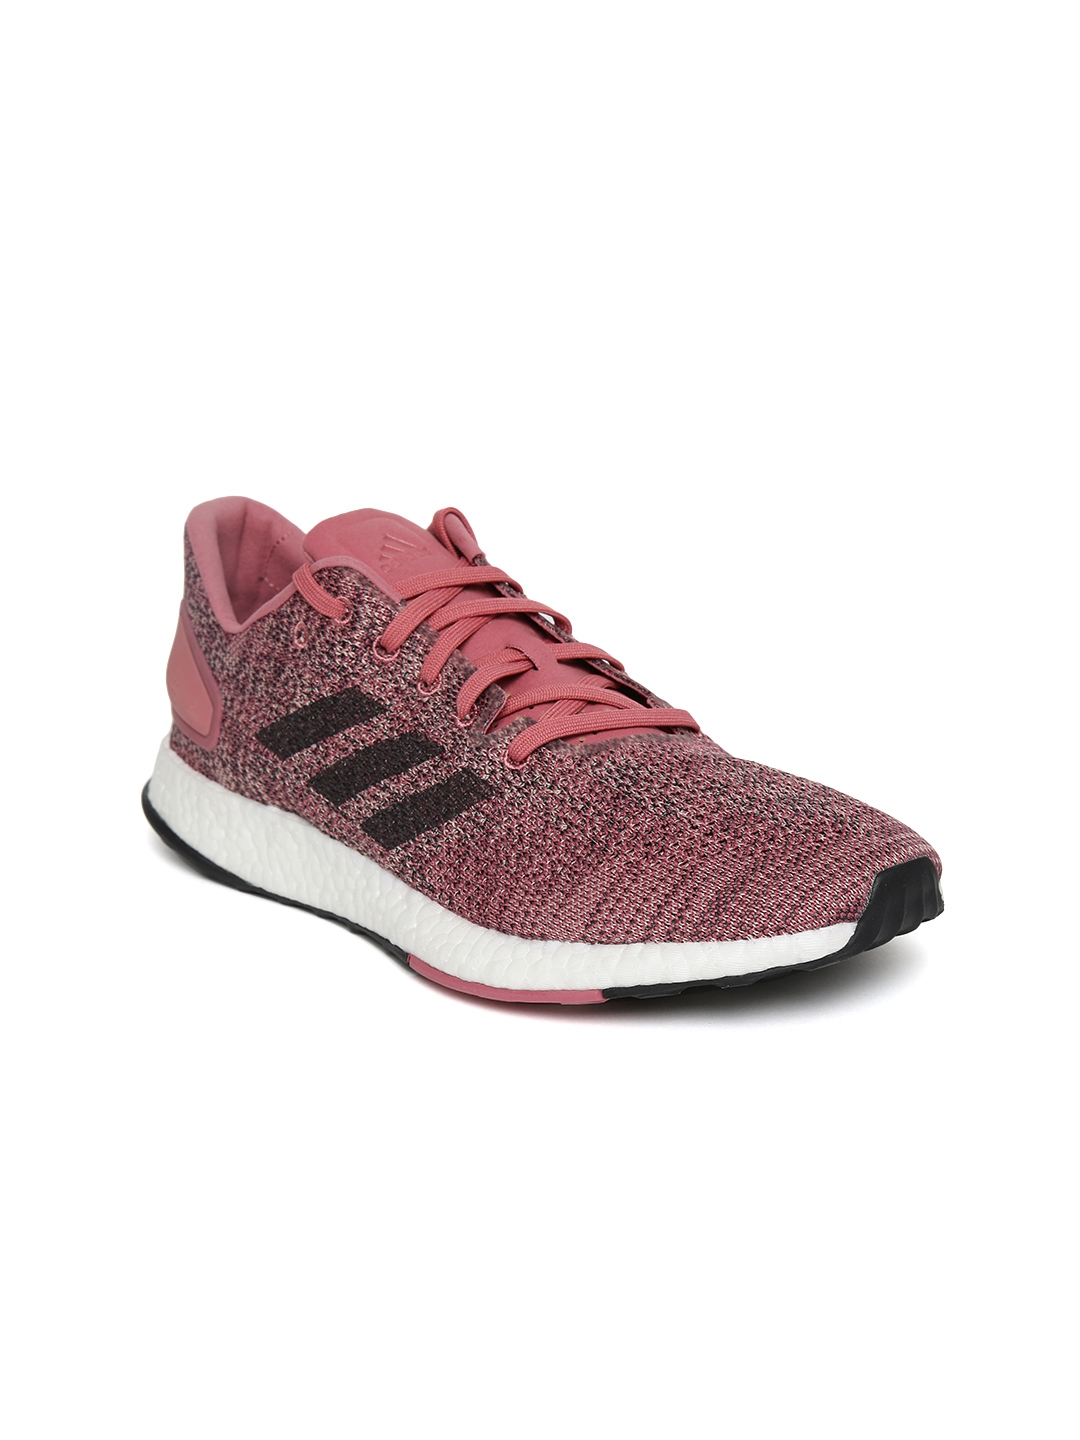 8f085faf6 Buy ADIDAS Women Pink Running Shoes - Sports Shoes for Women 6841896 ...